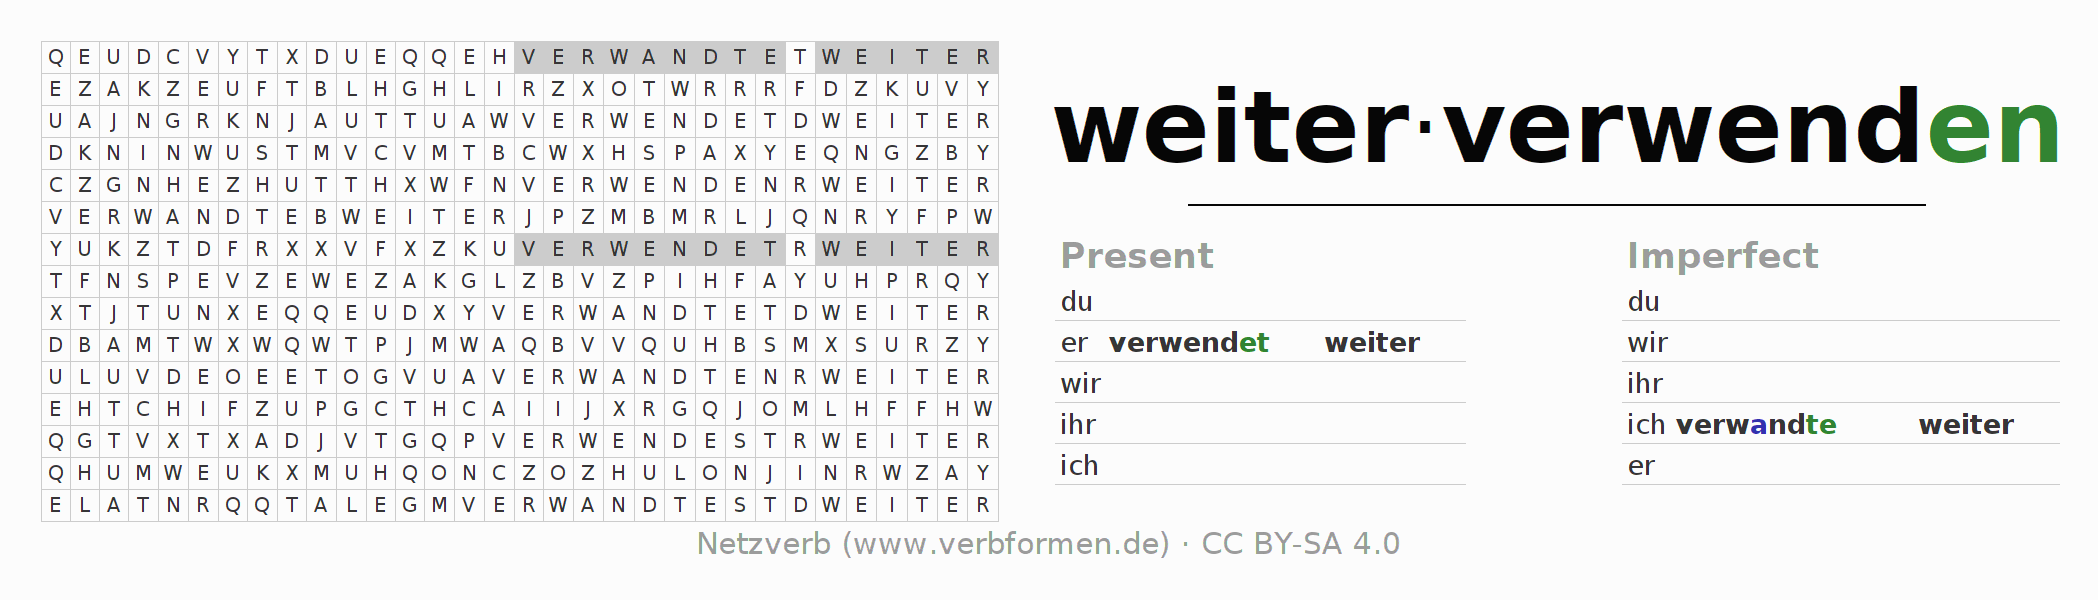 Word search puzzle for the conjugation of the verb weiterverwenden